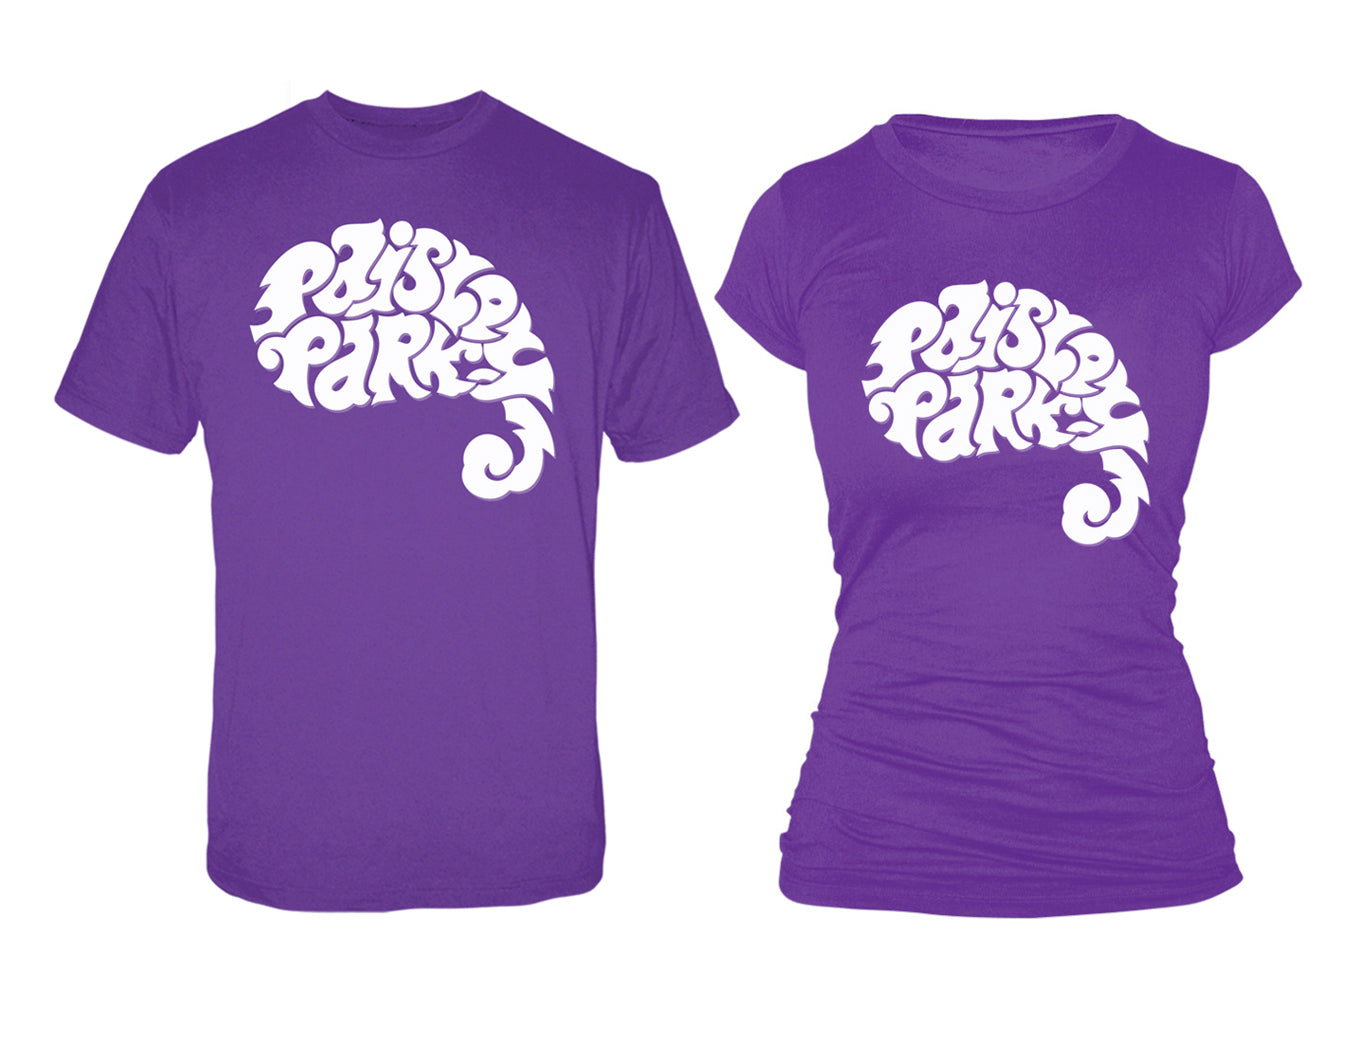 b46d619e2bb0 Paisley Park Logo T-Shirt - Men's & Women's